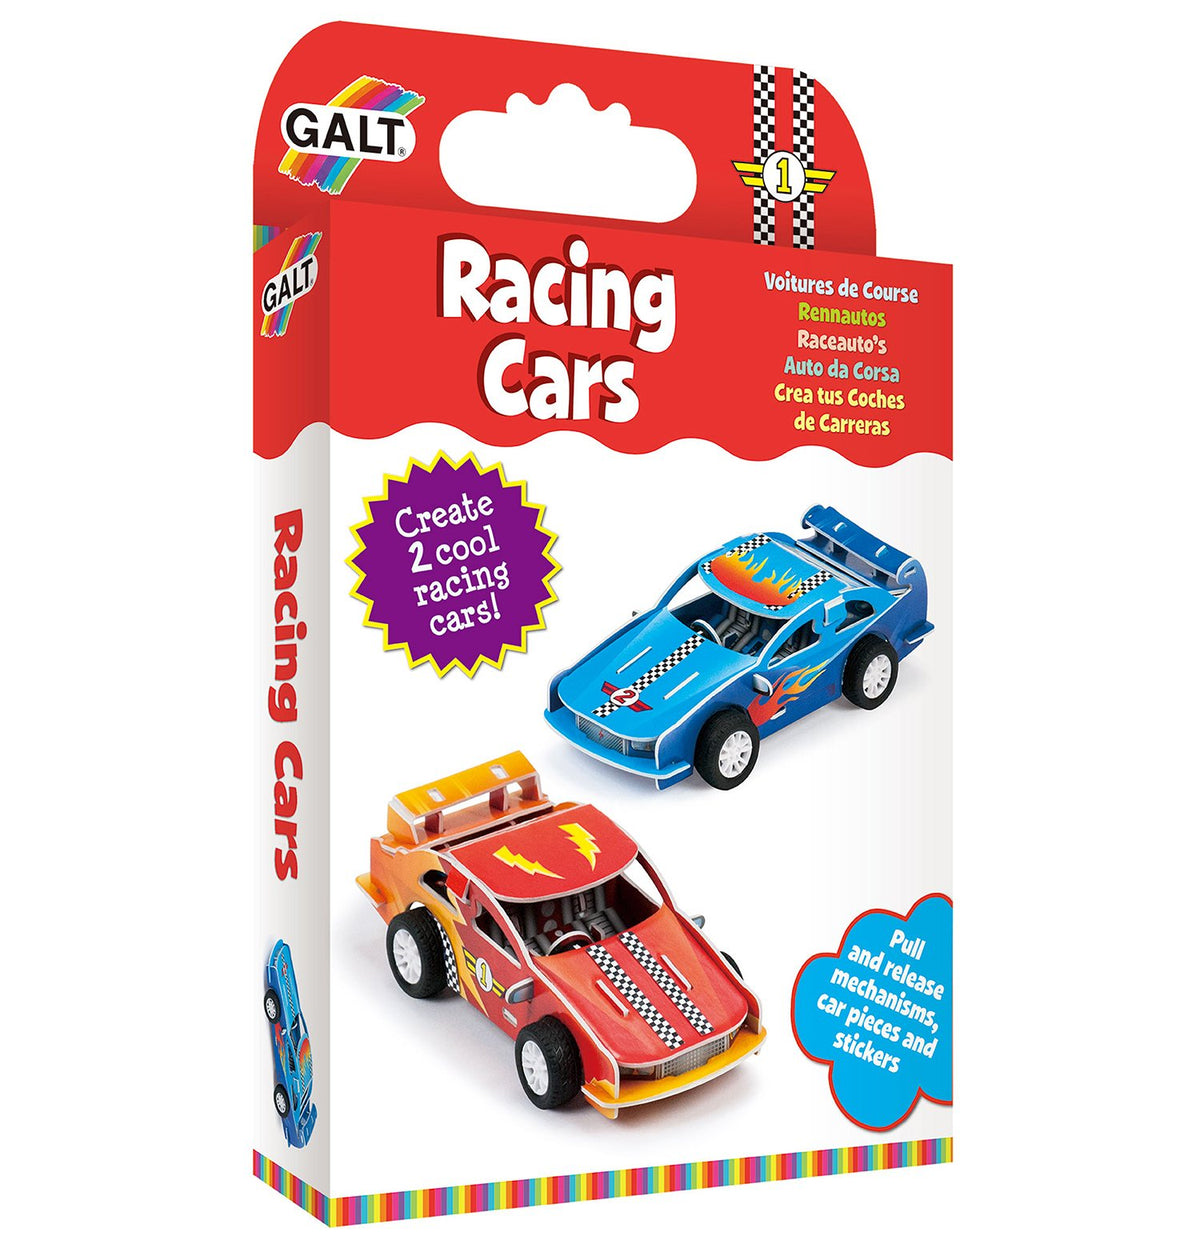 Racing Cars - Galt